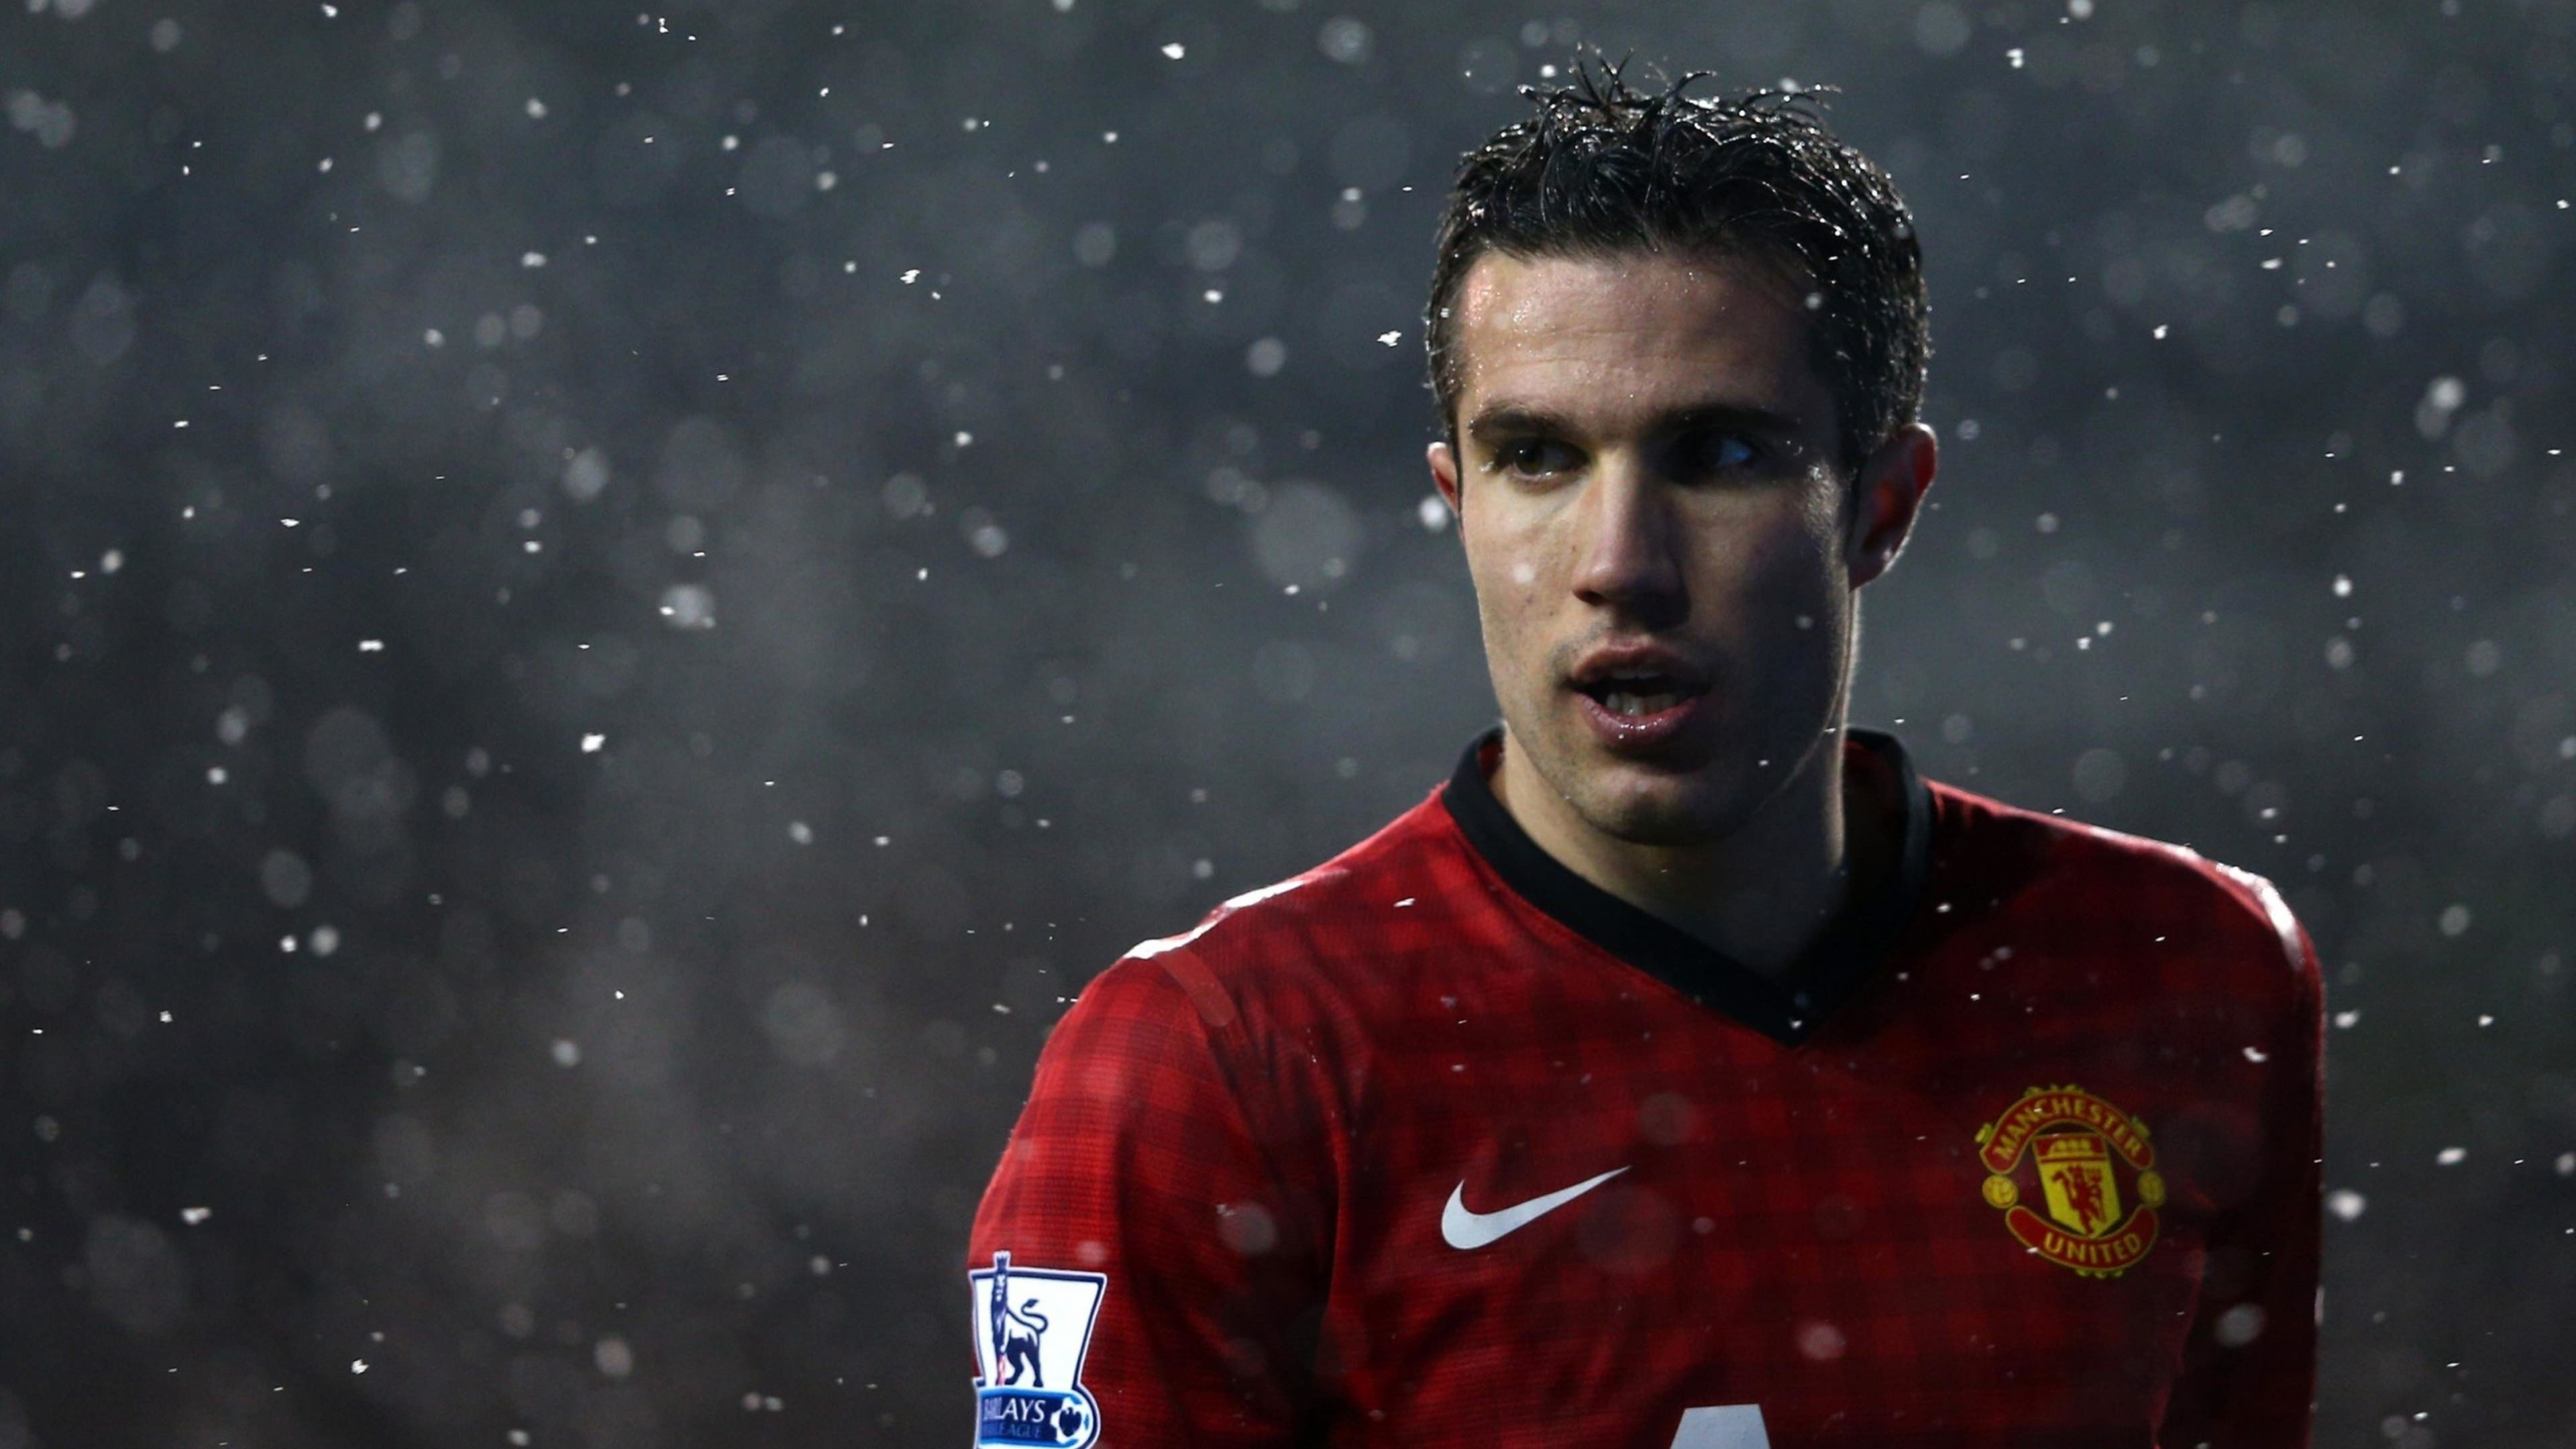 Robin van Persie Wallpaper for Desktop 4K 3840x2160